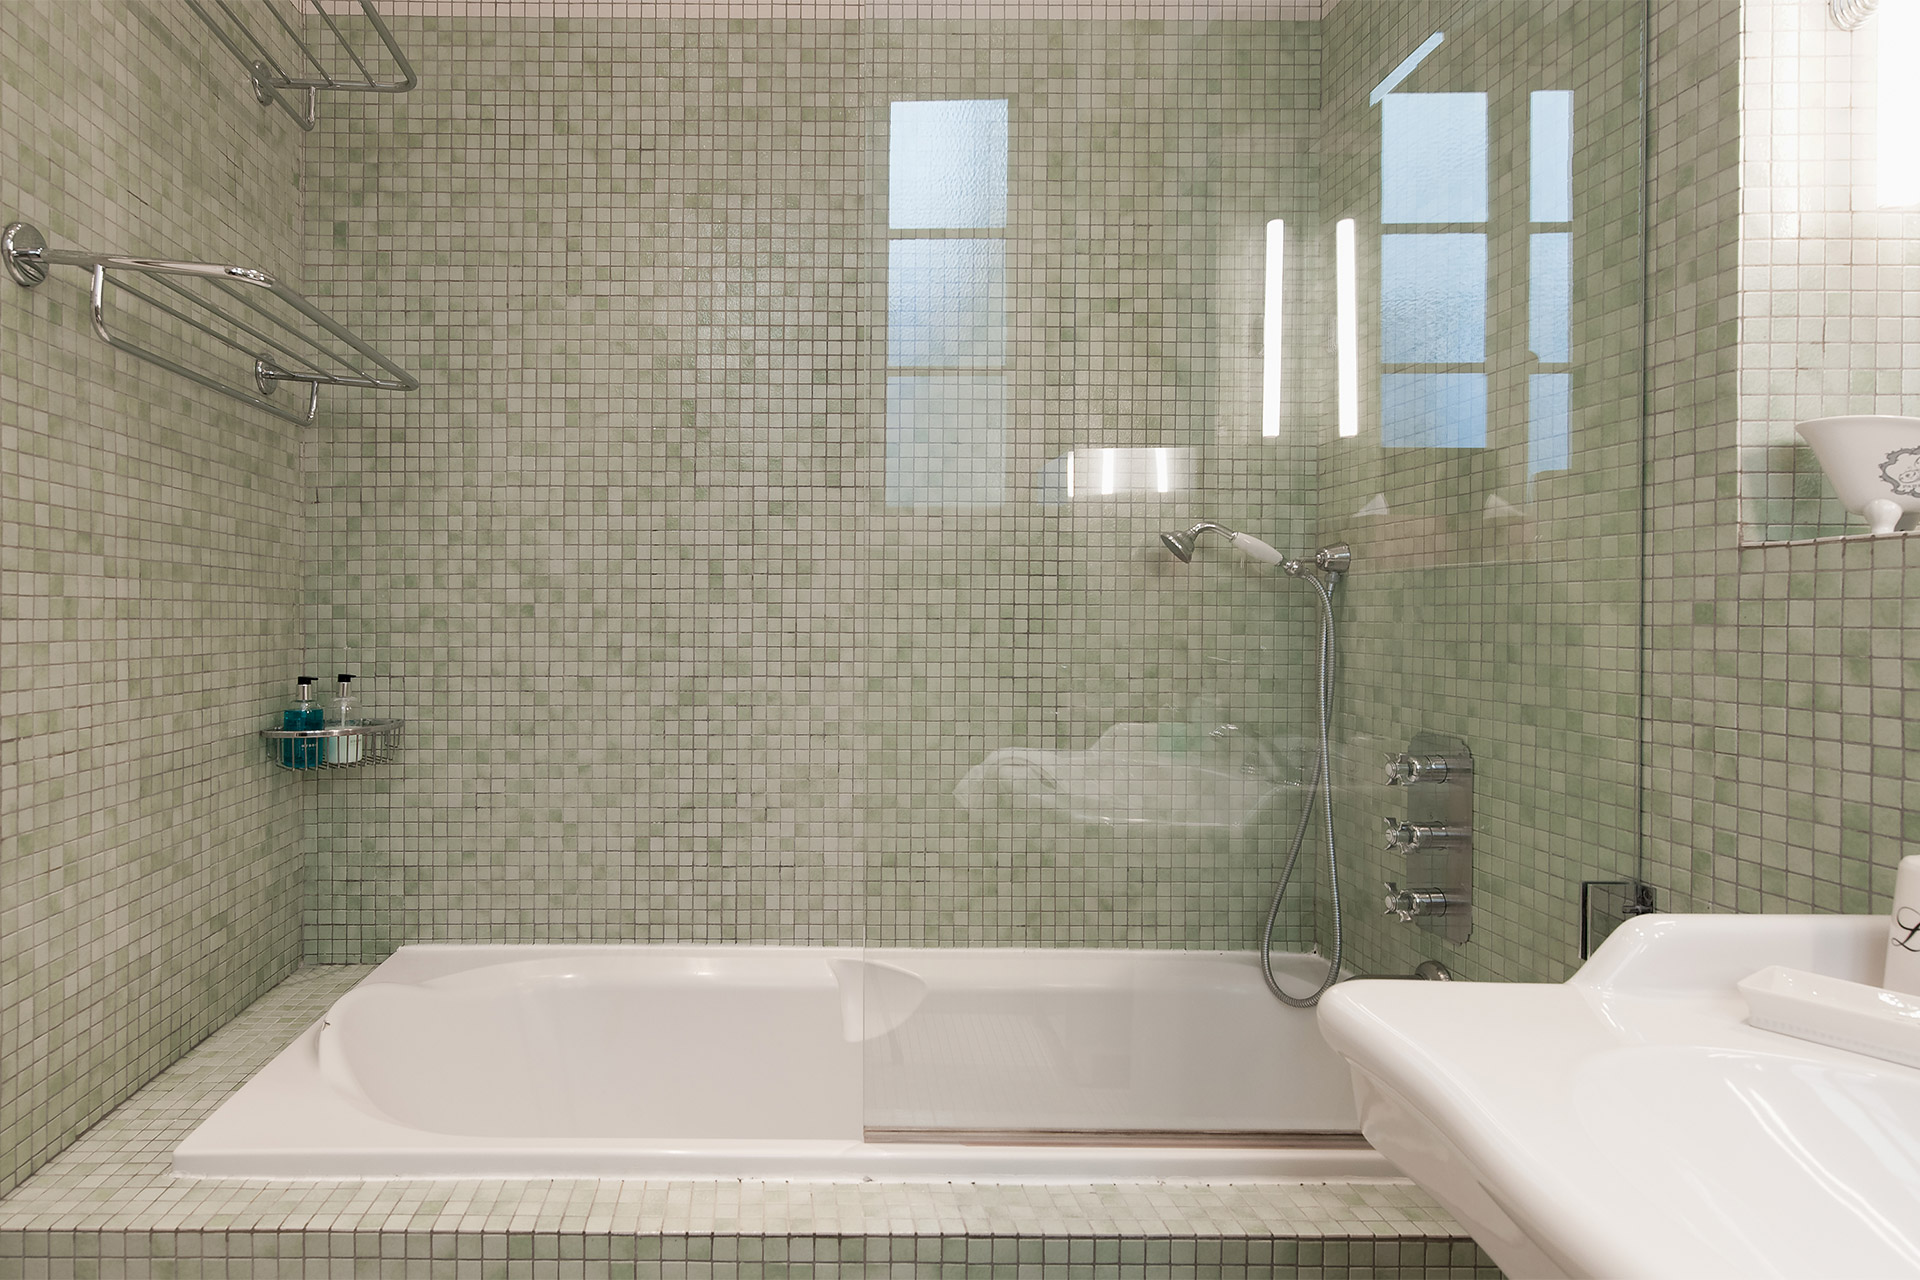 Take a relaxing bath in the Mâcon vacation rental offered by Paris Perfect